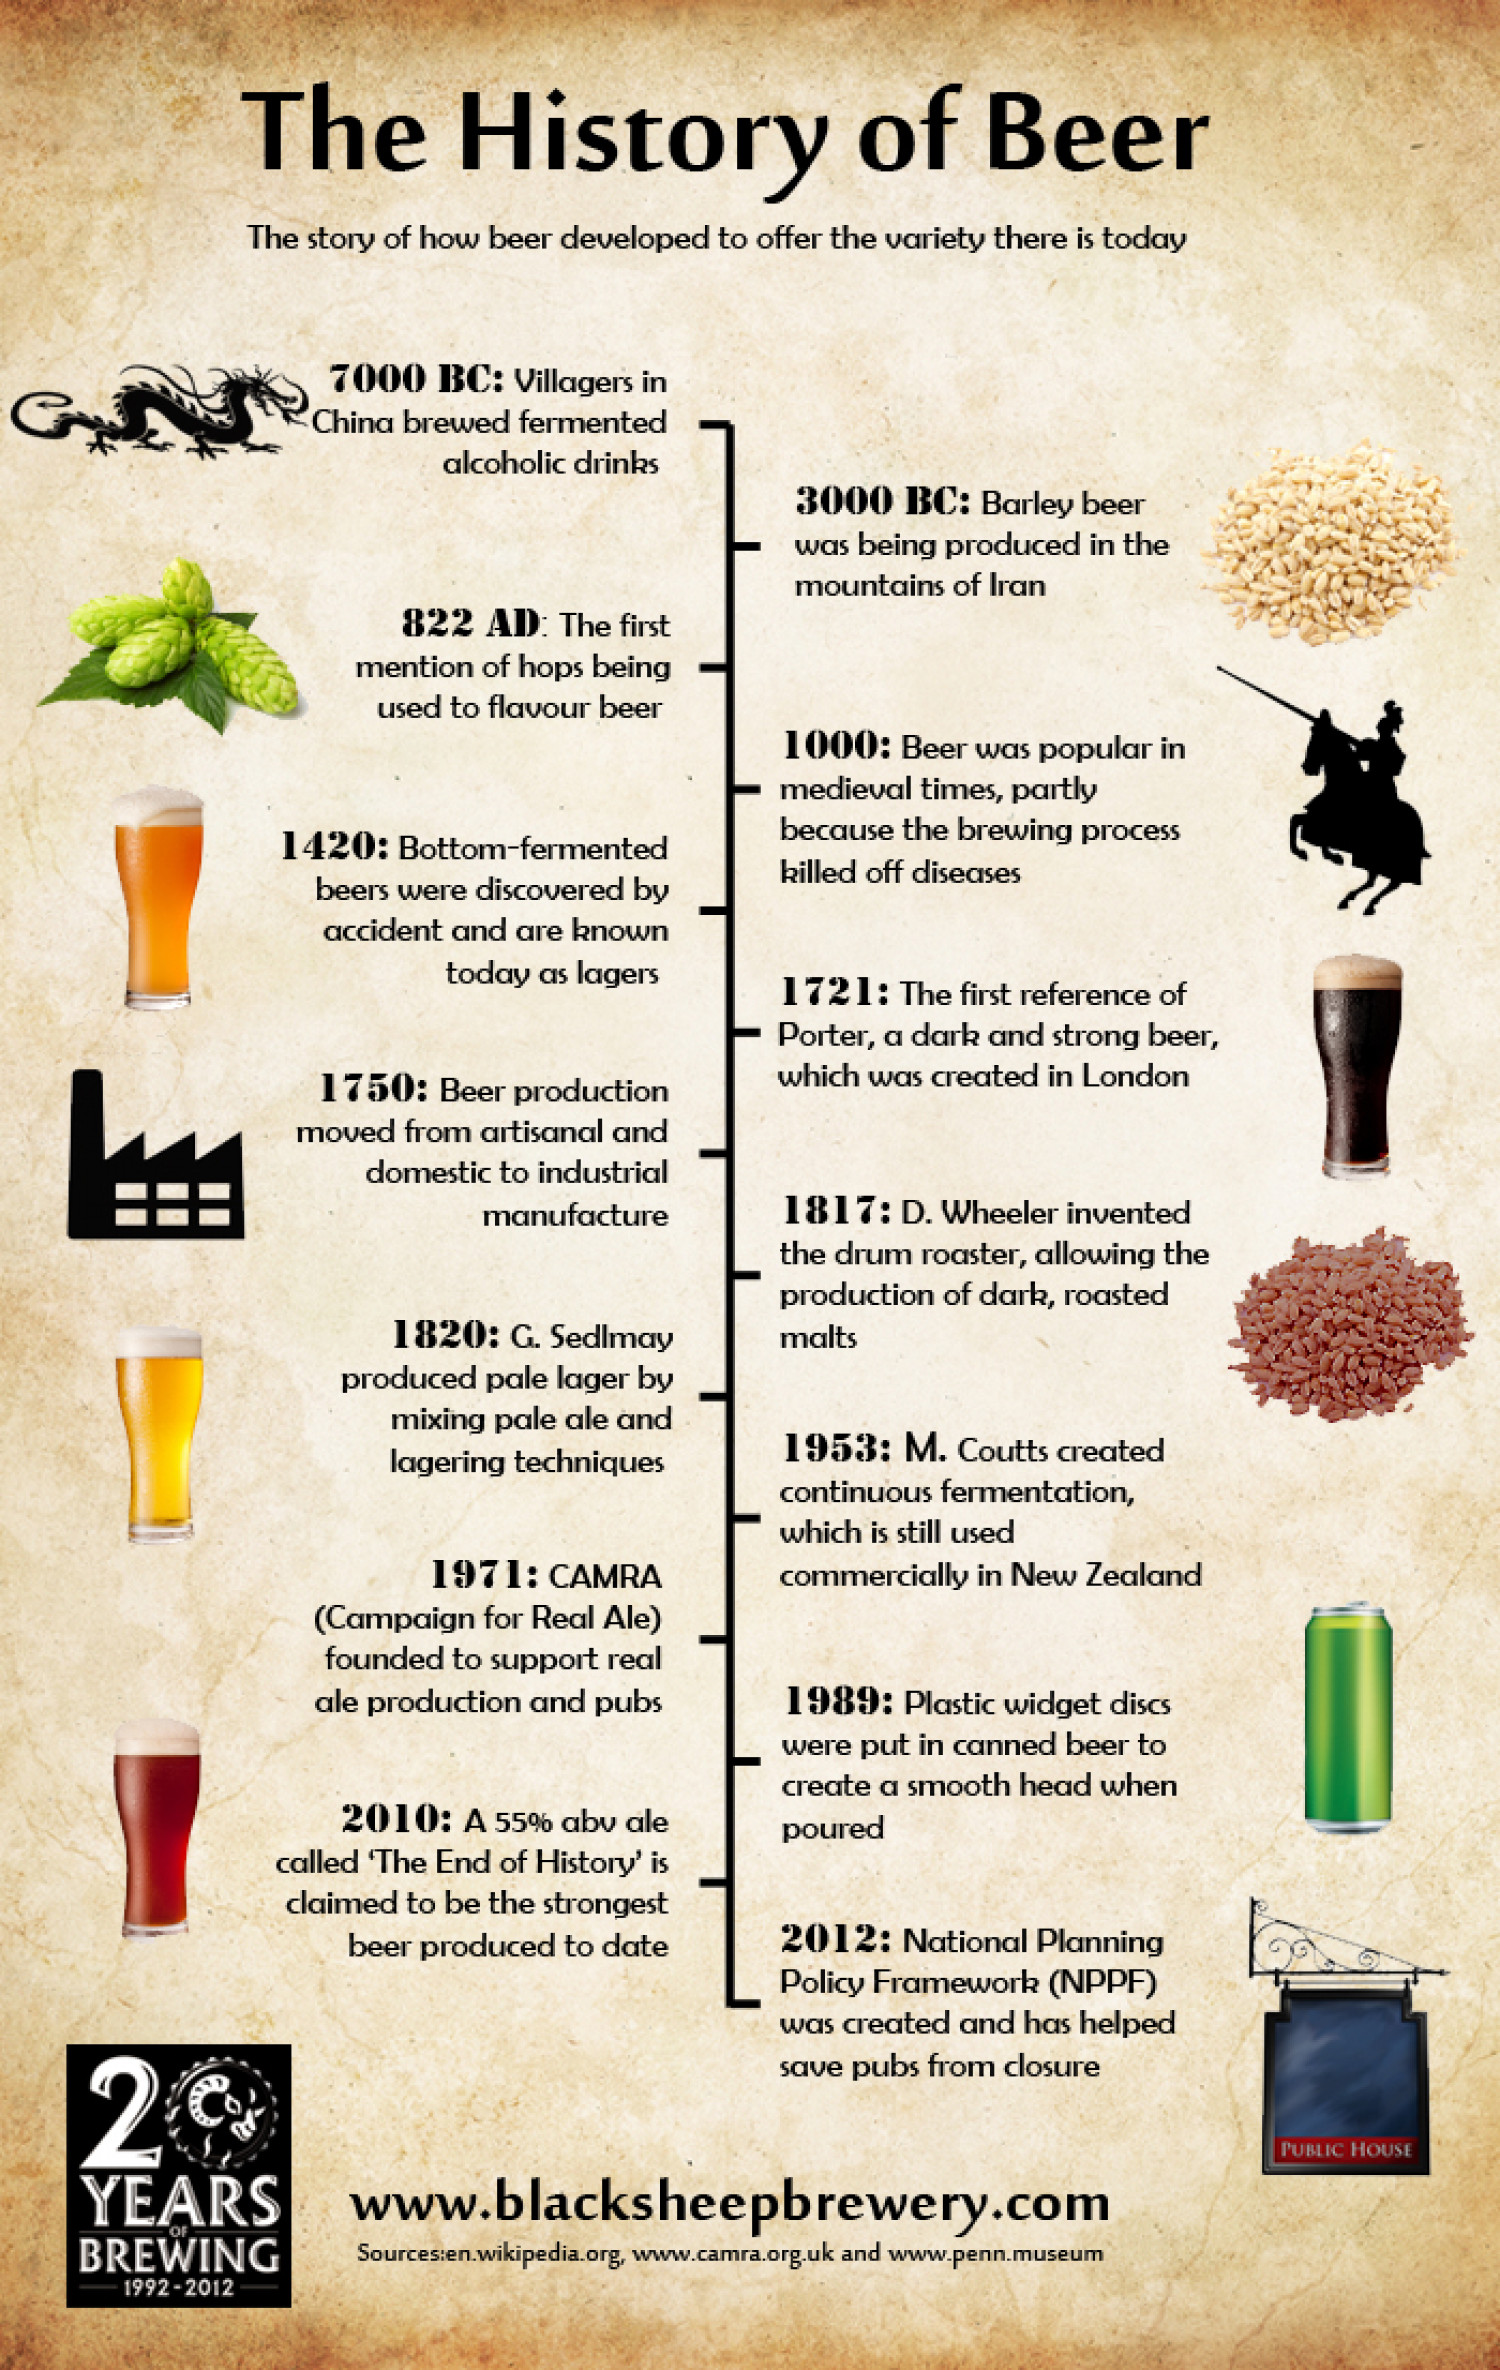 The History of Beer Infographic